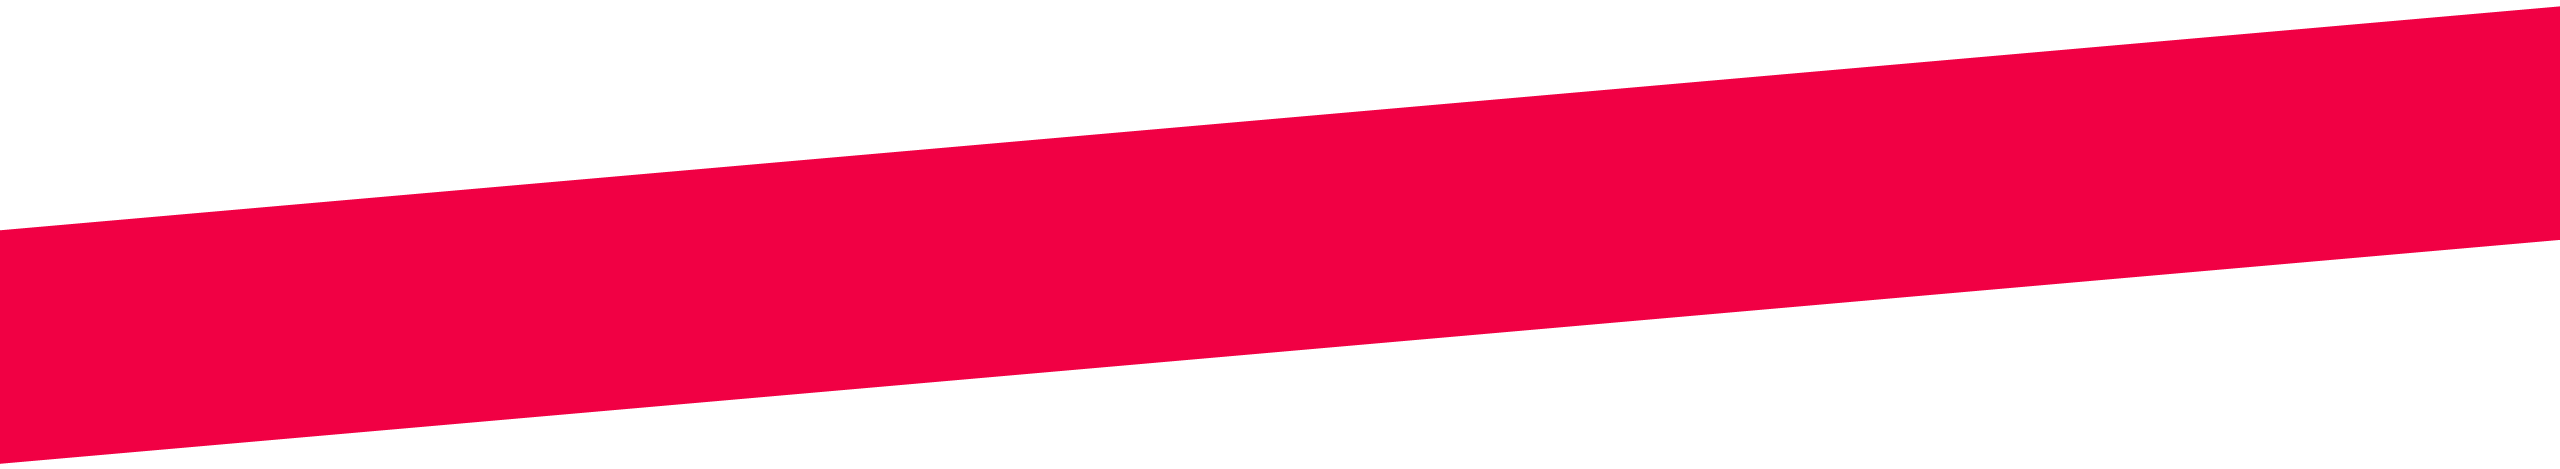 clip art free Red stripes png